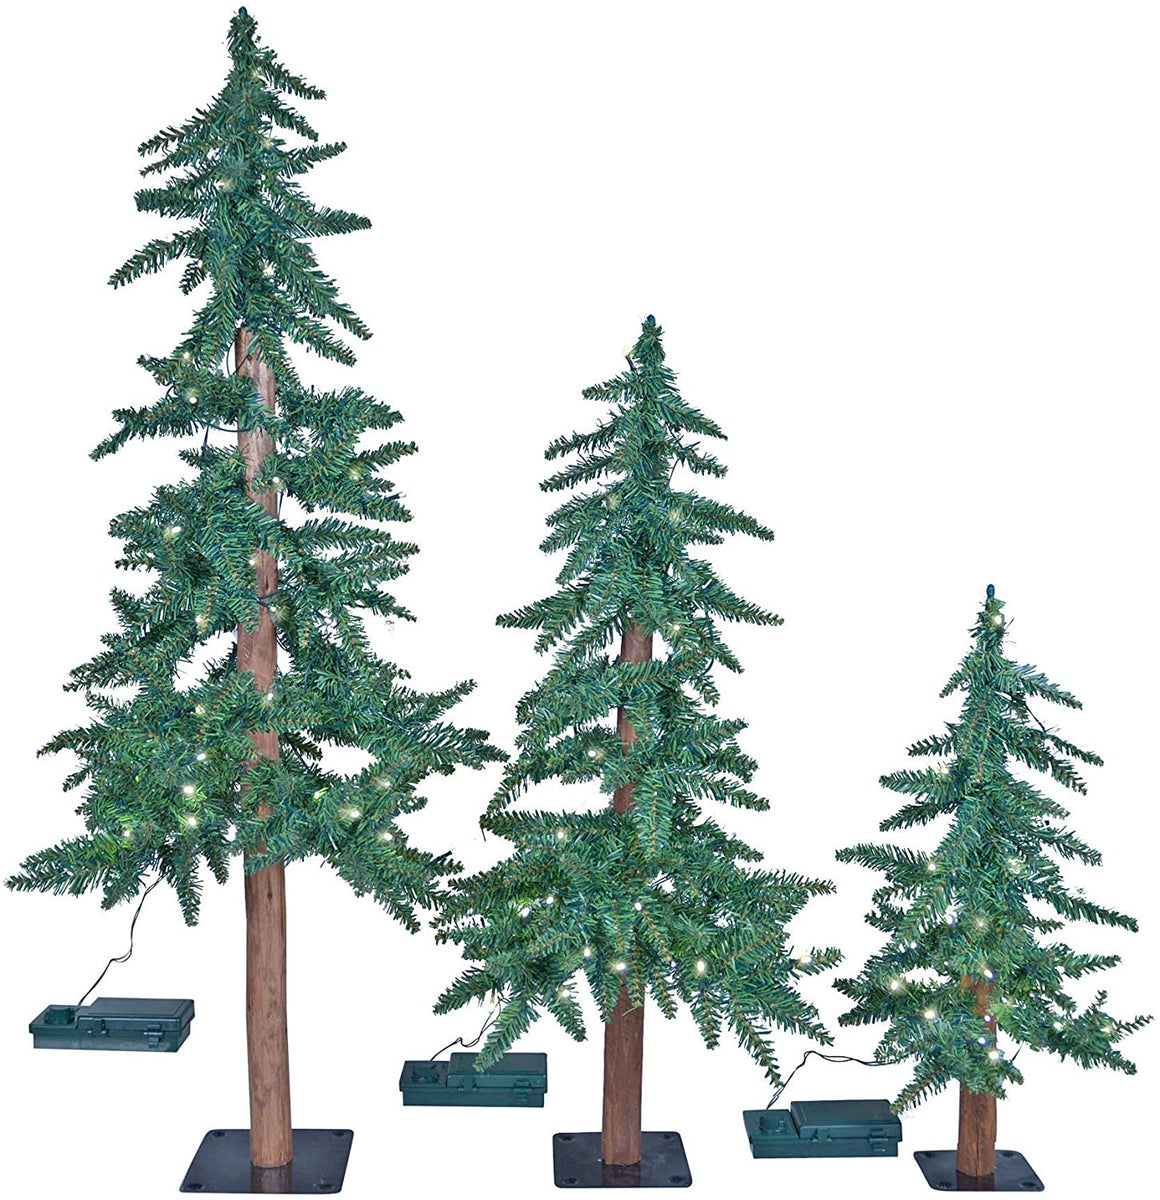 Set of 3 Lighted Christmas Artificial Noble Fir Pine Trees with Wood Trunks- 26 Inches, 37 Inches, 50 Inches High Artificial Alpine Trees – LED Lights Battery Operated with Timers and Function Modes